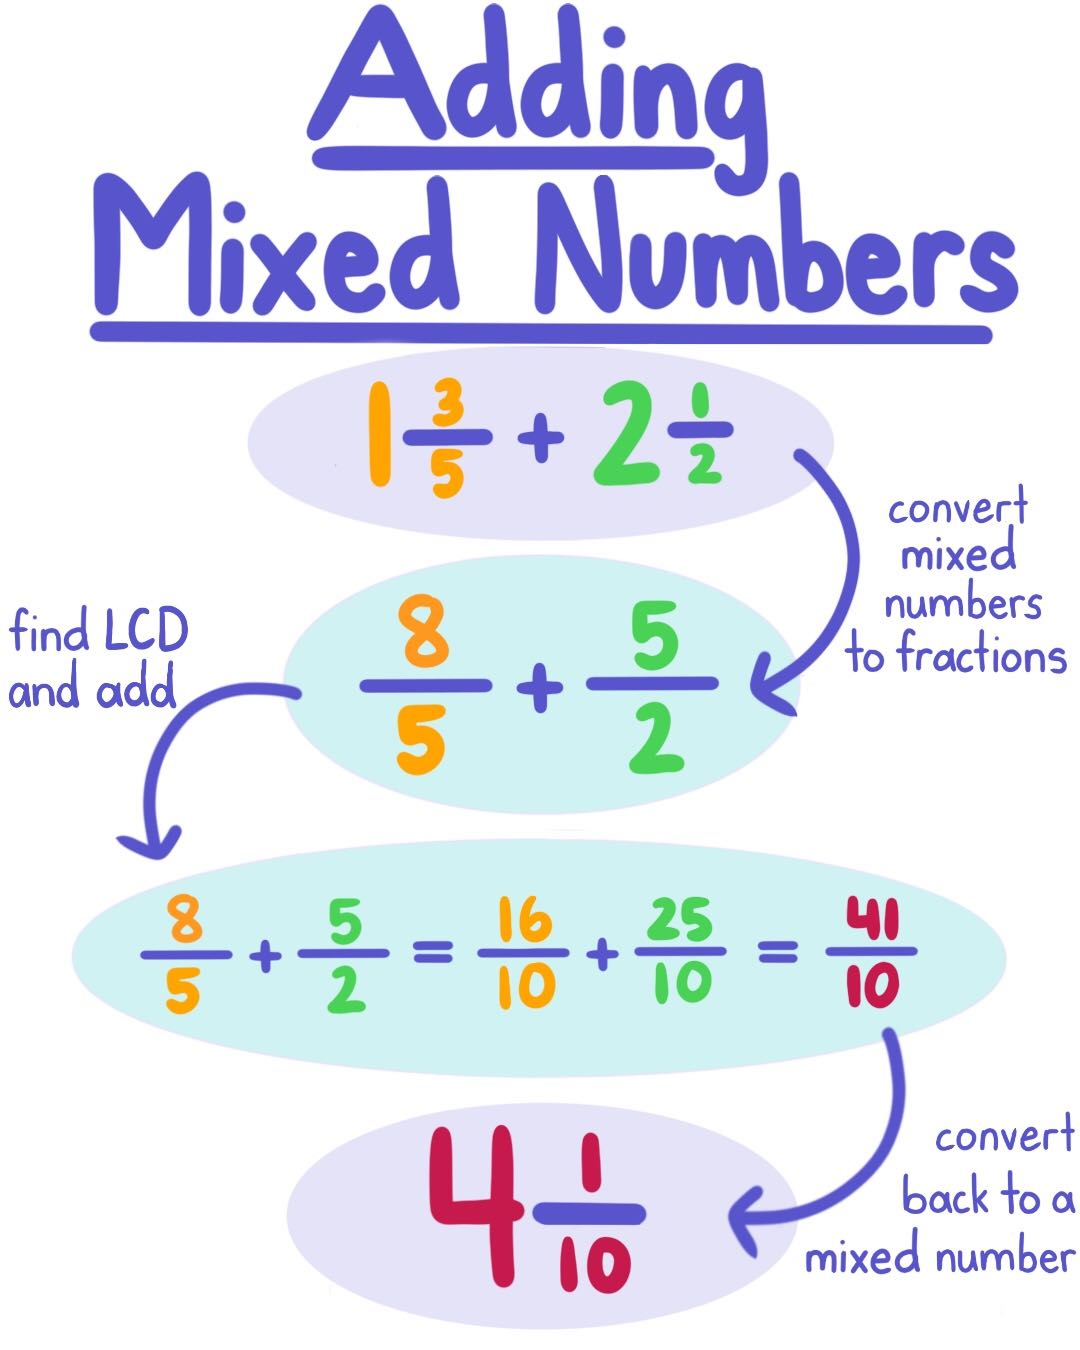 How To Add Mixed Fractions